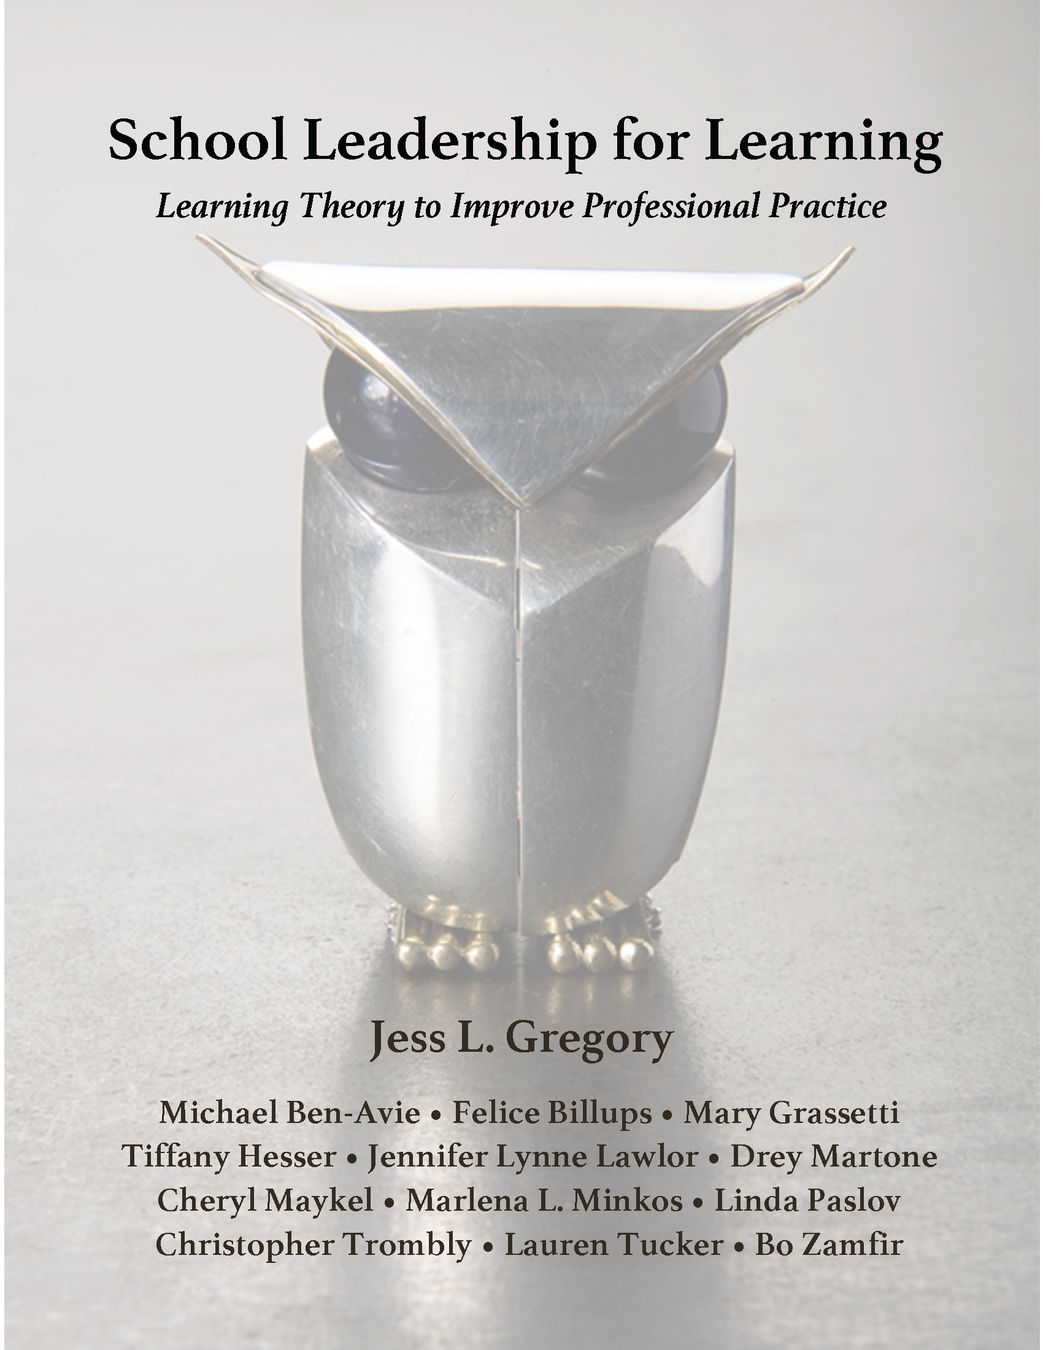 School Leadership for Learning: Learning Theory to Improve Professional Practice